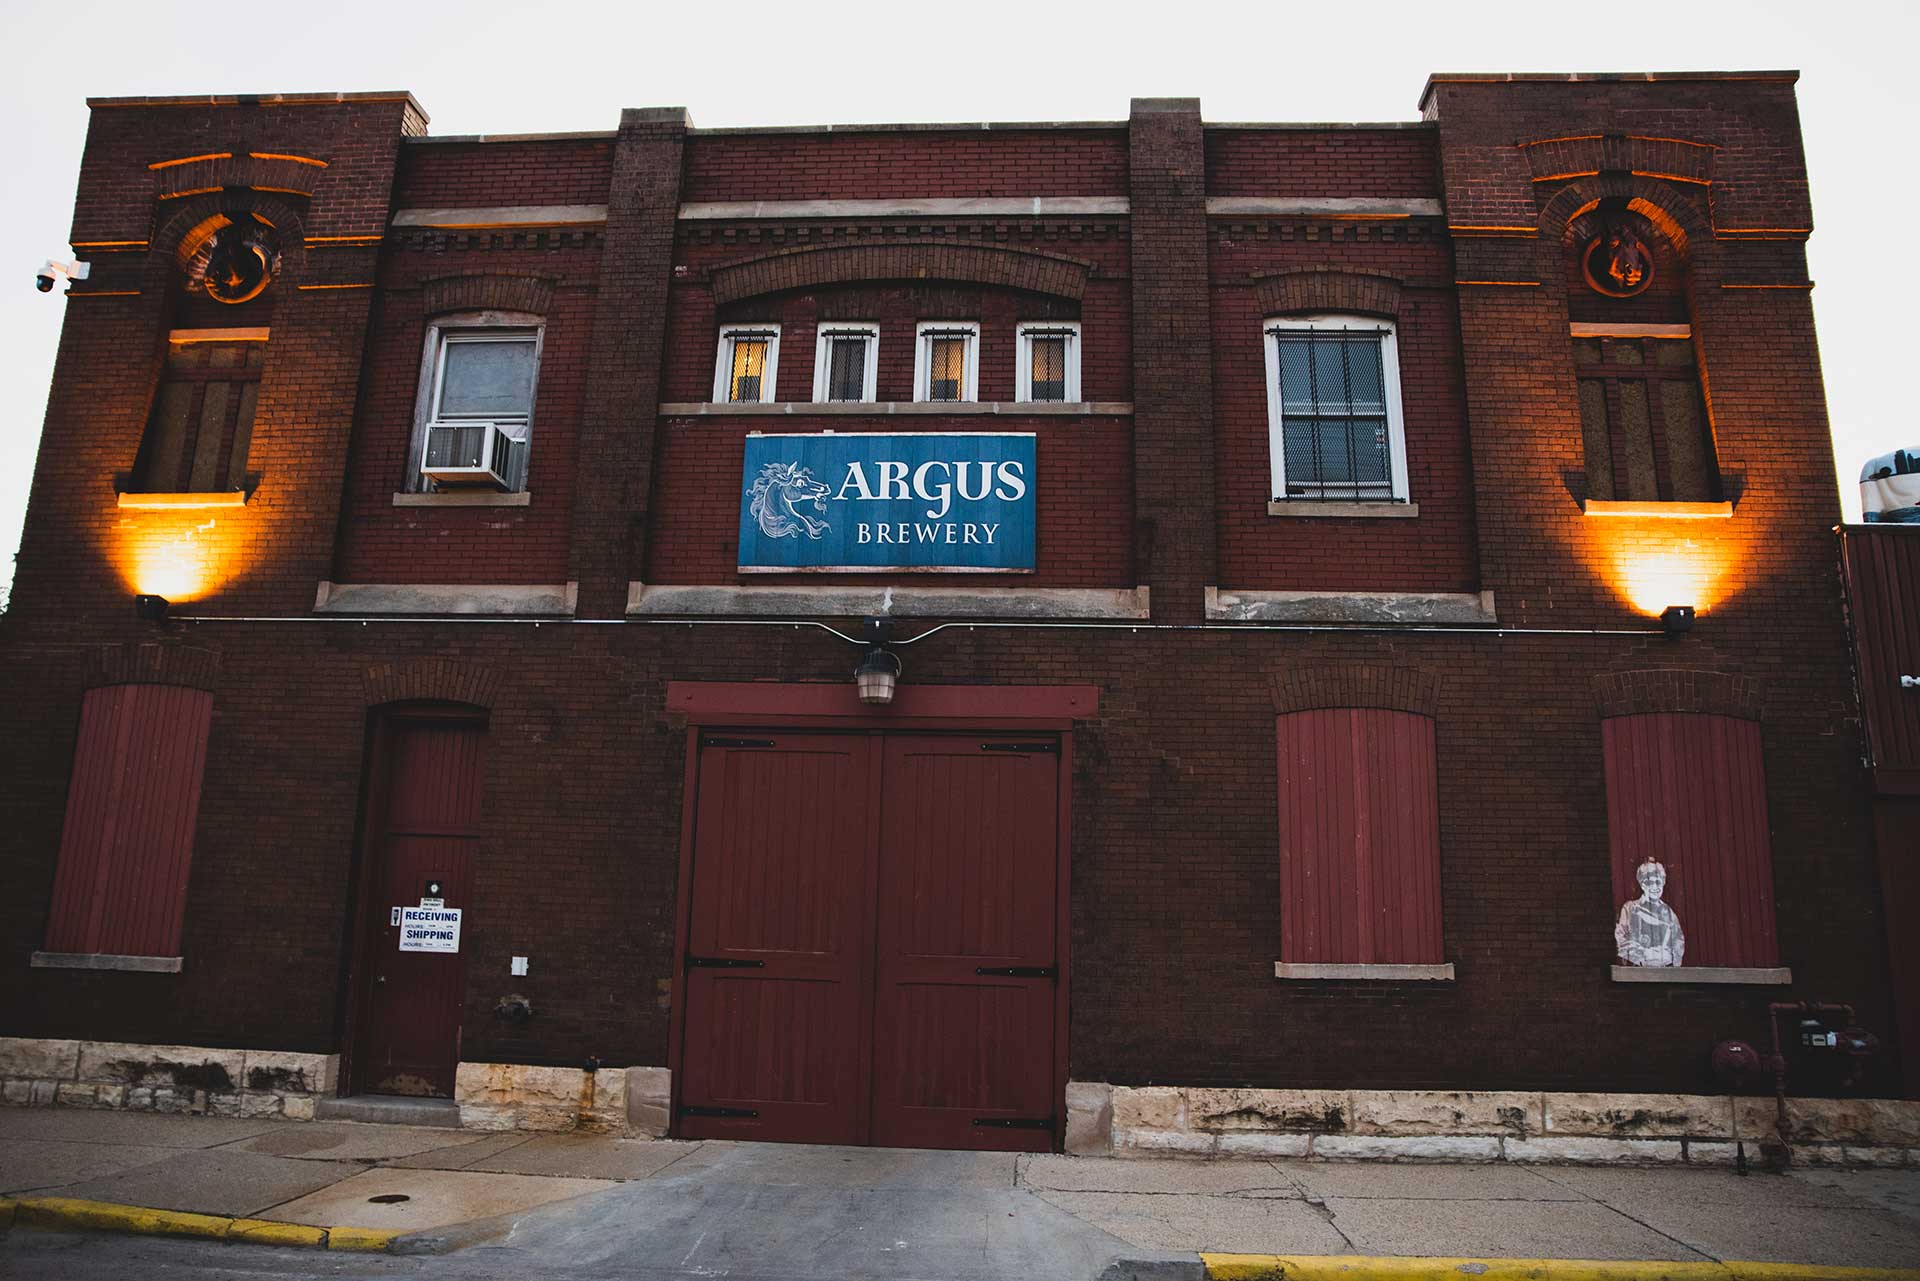 Argus Brewery Closes in COVID-19 Downturn